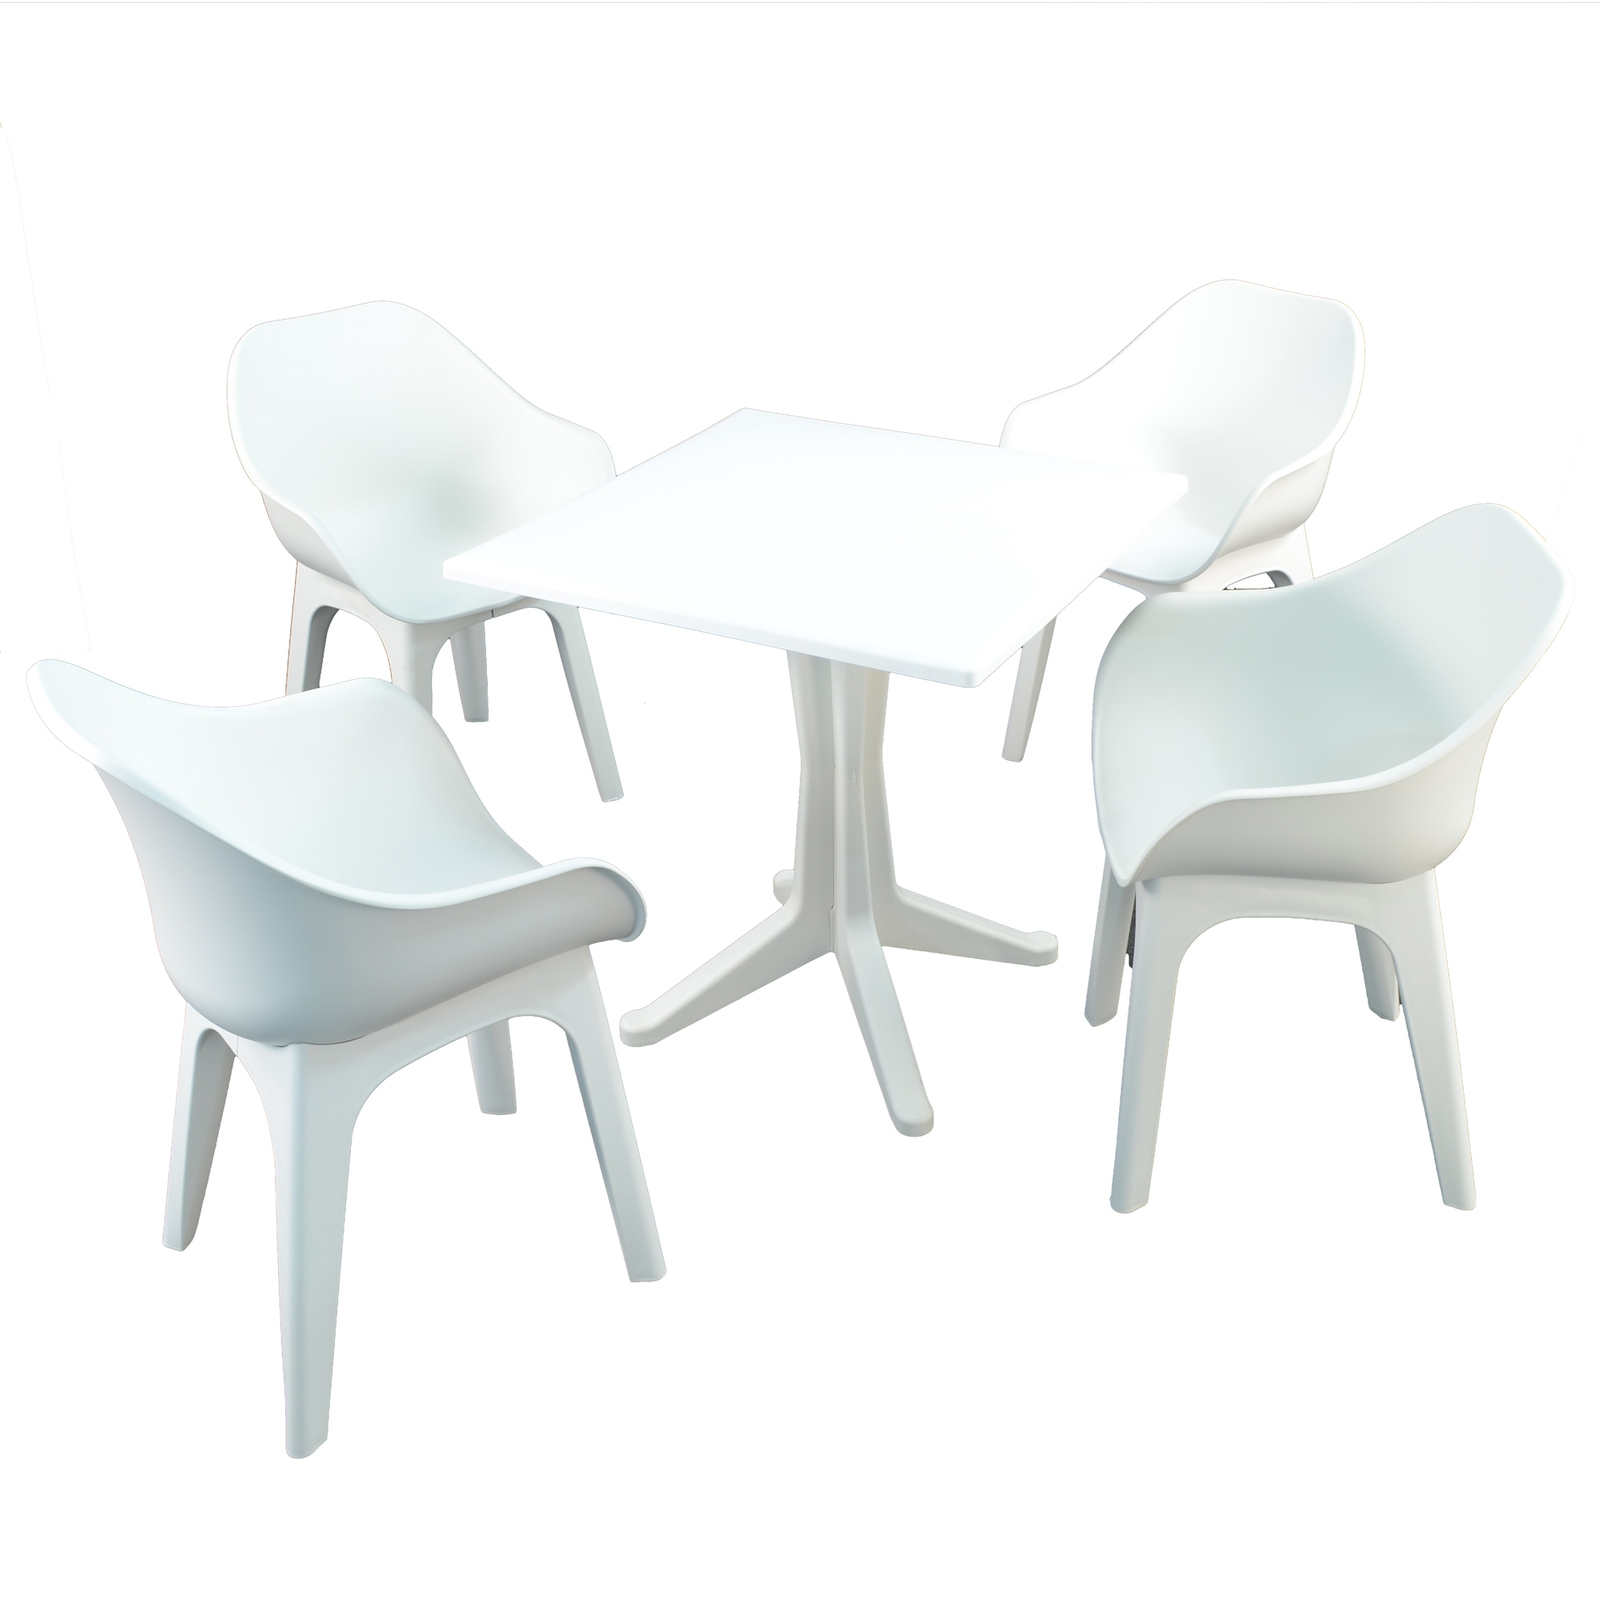 Trabella White Ponente Dining Table With 4 Ghibli Chairs